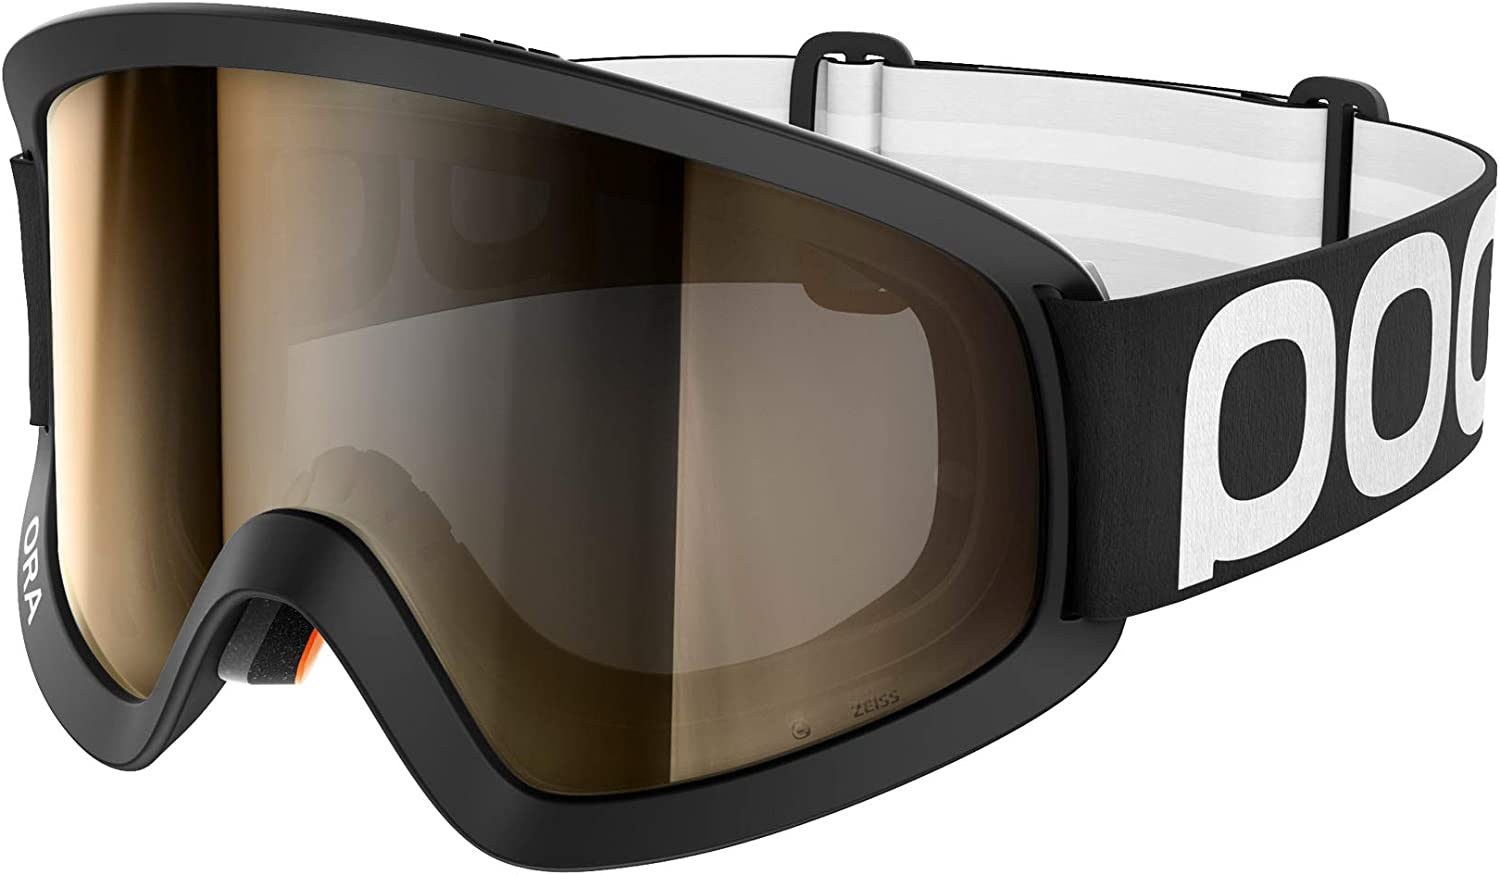 POC, Ora Clarity, Mountain Biking Goggles